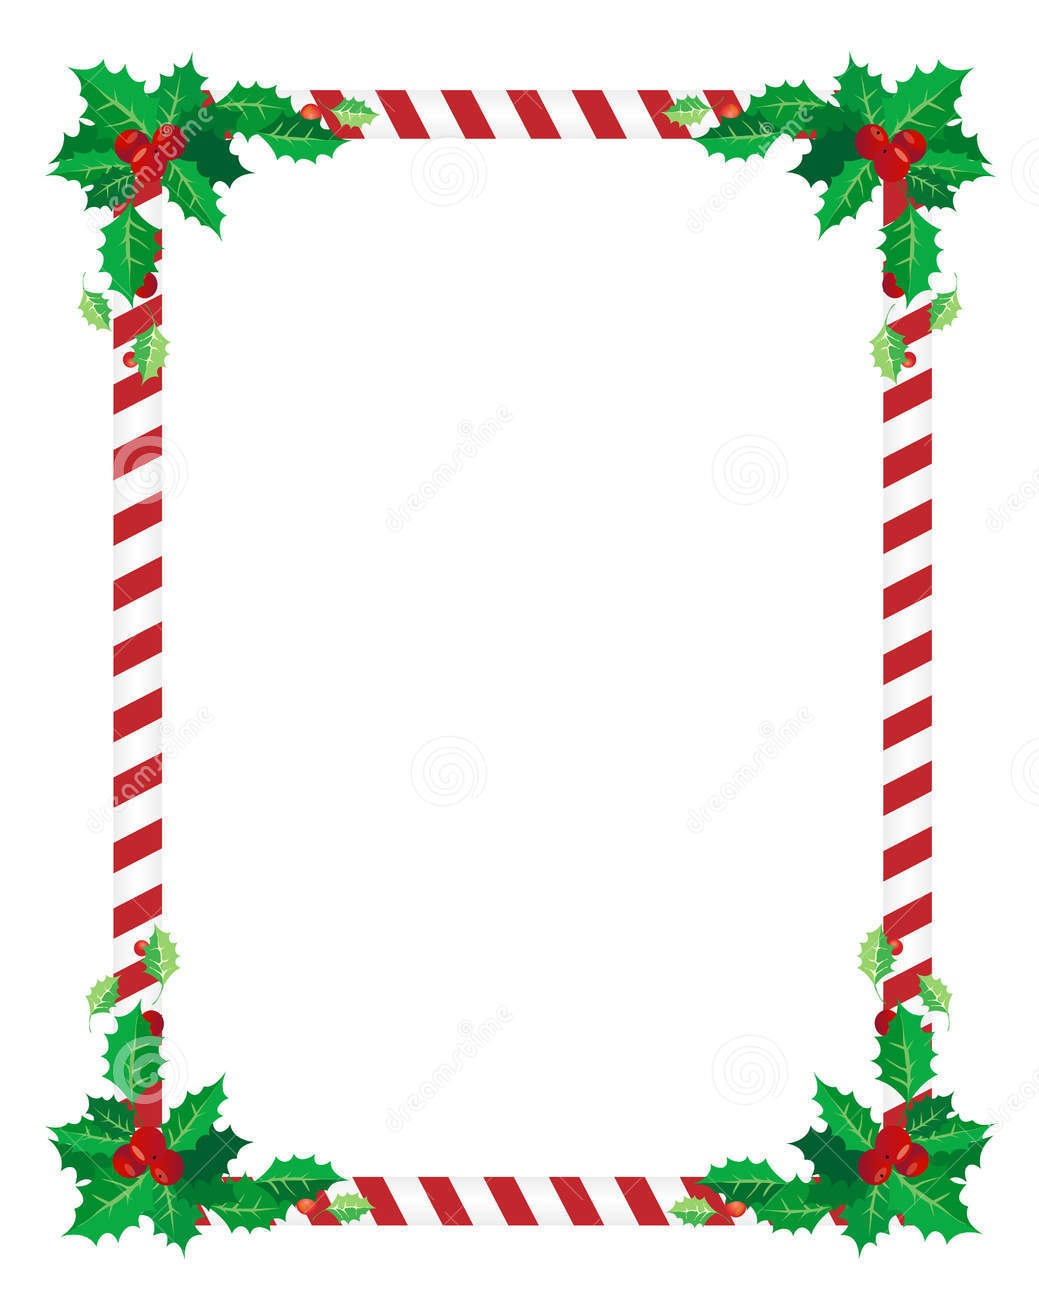 Christmas Borders Backgrounds Clipart - Clipart Kid